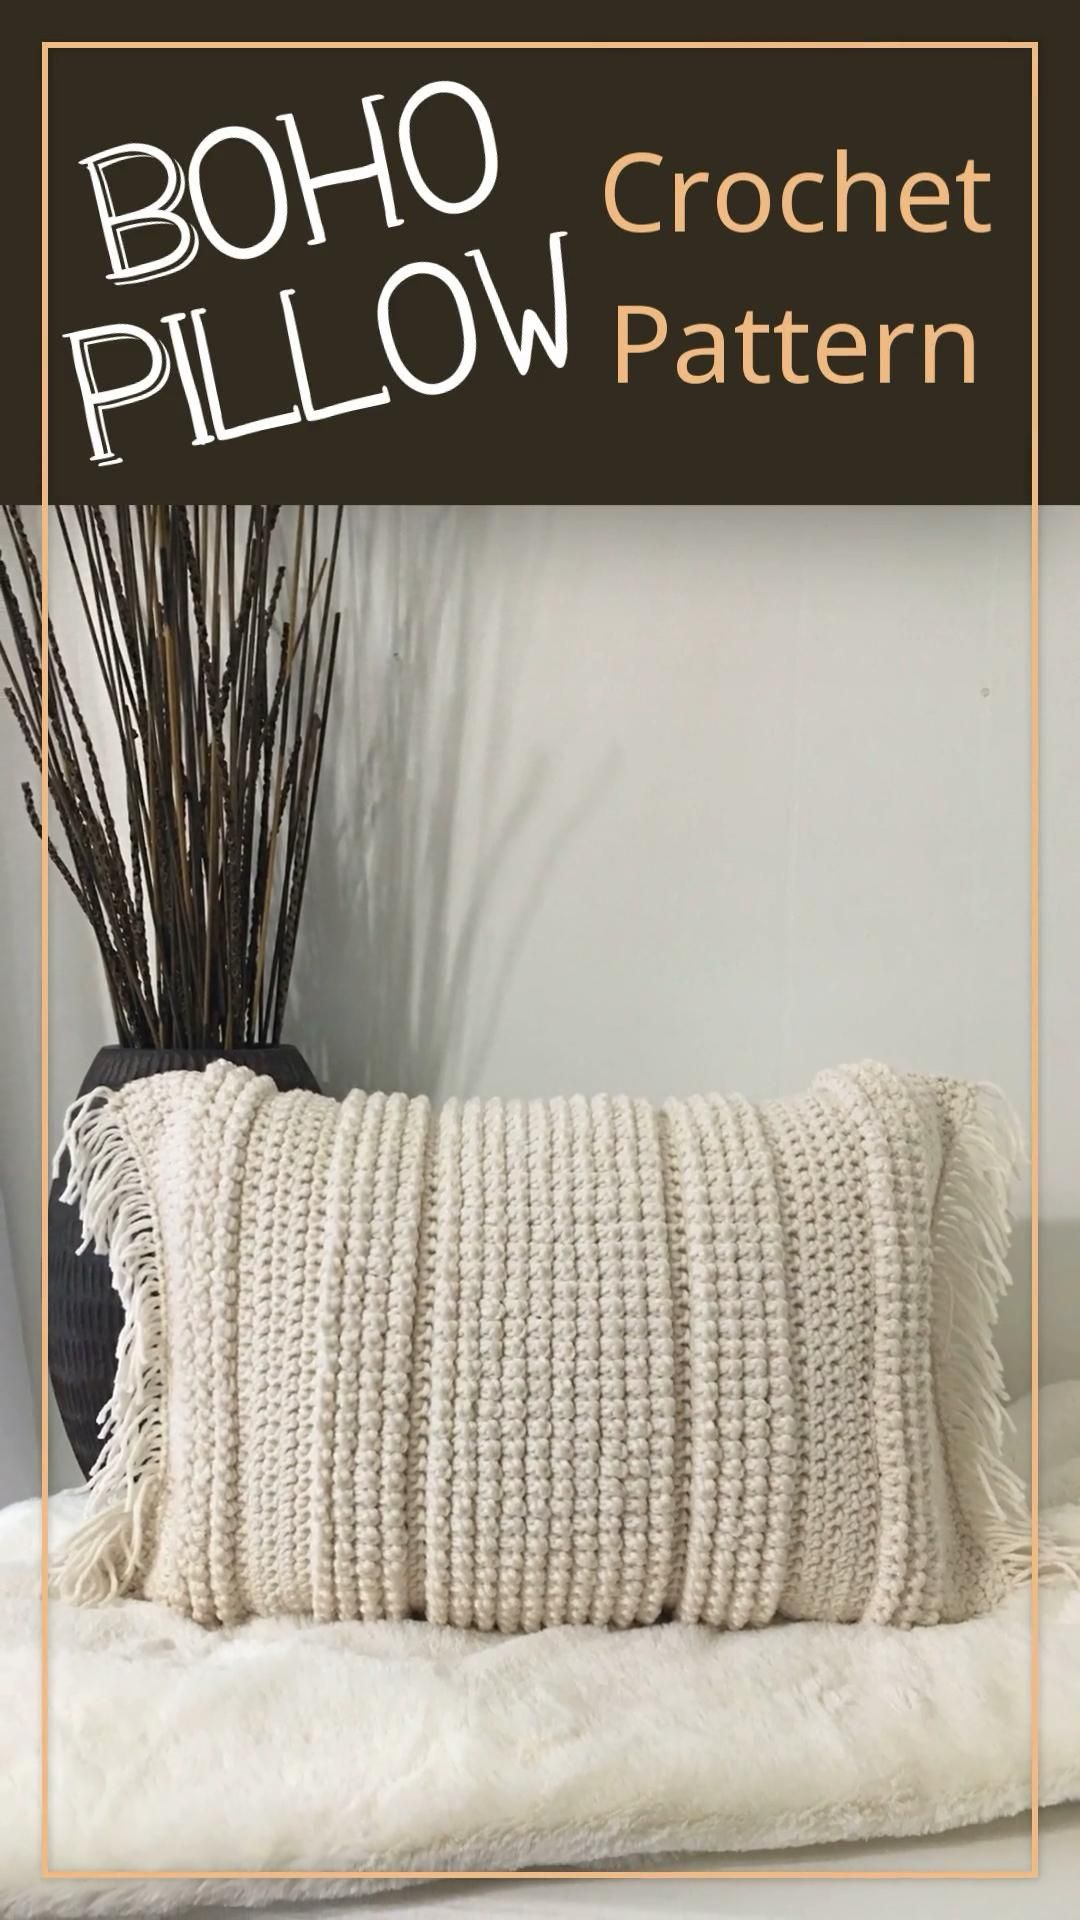 Boho Pillow- Crochet PATTERN- by Tracy Phillips @ A Frayed Knot Boutique